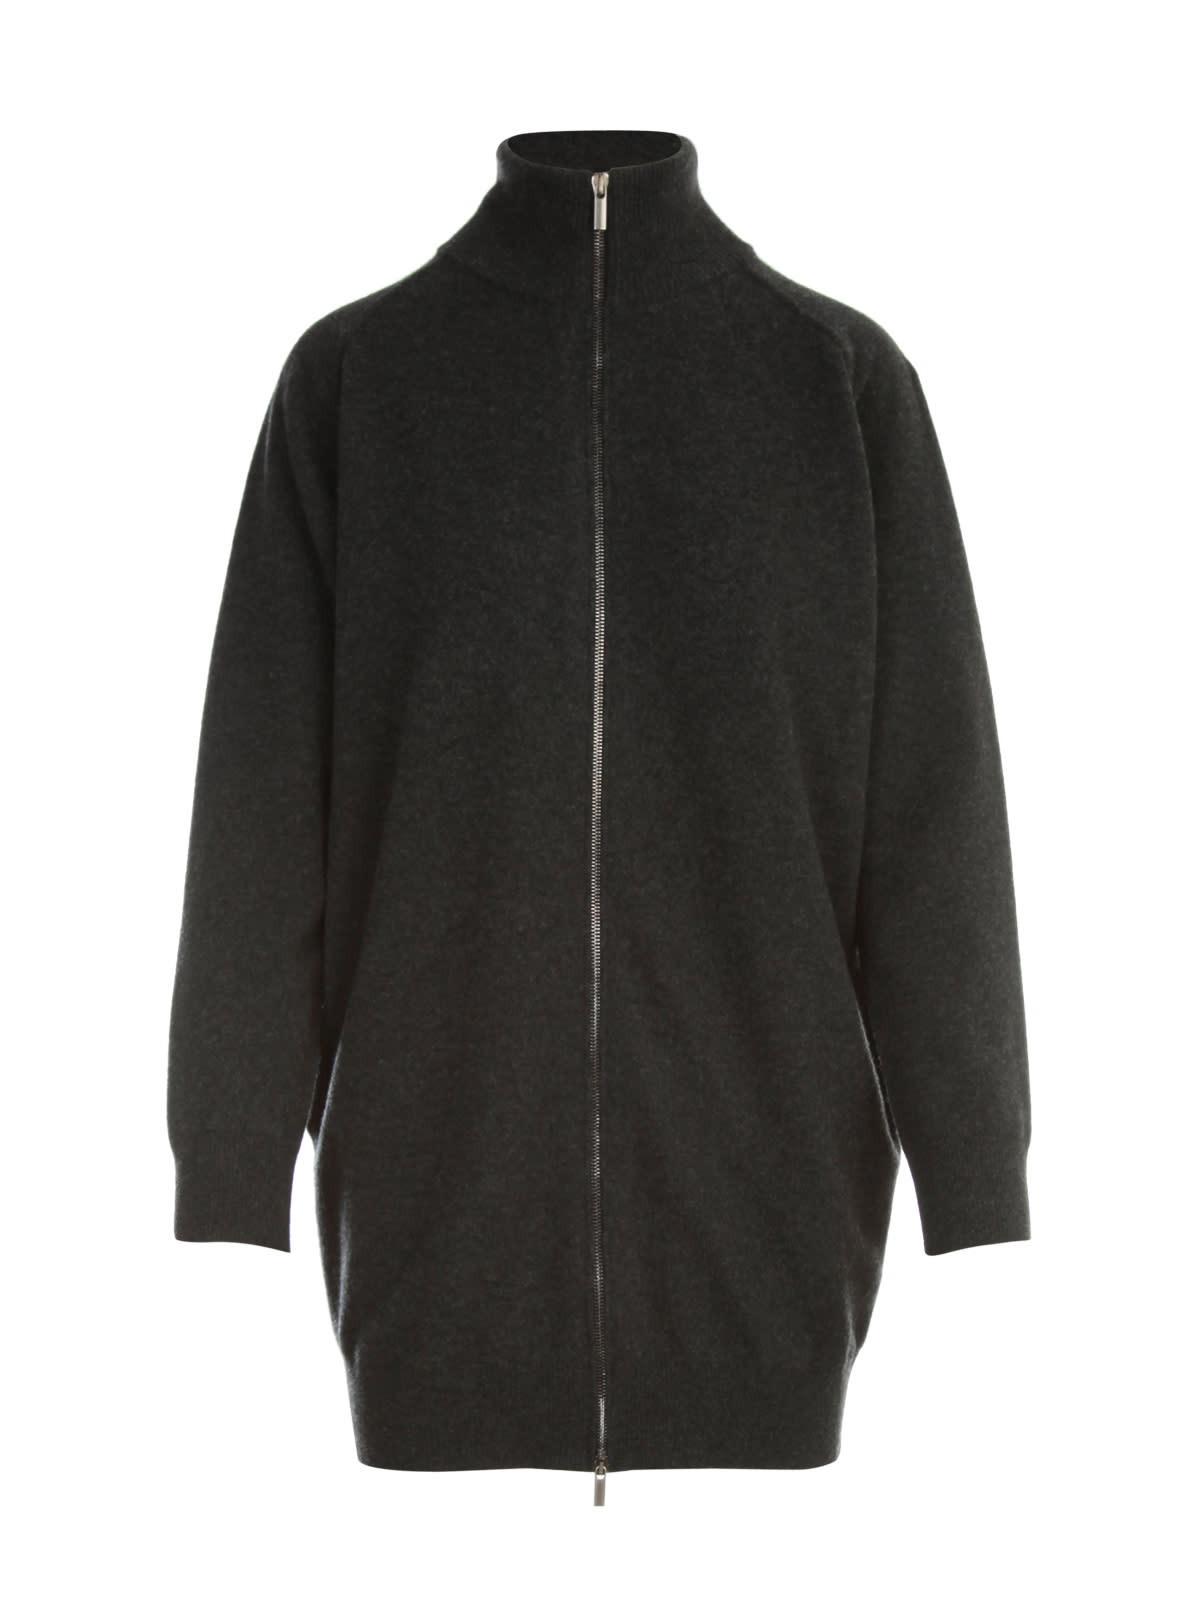 Straight Zipped High Neck L/s Sweater